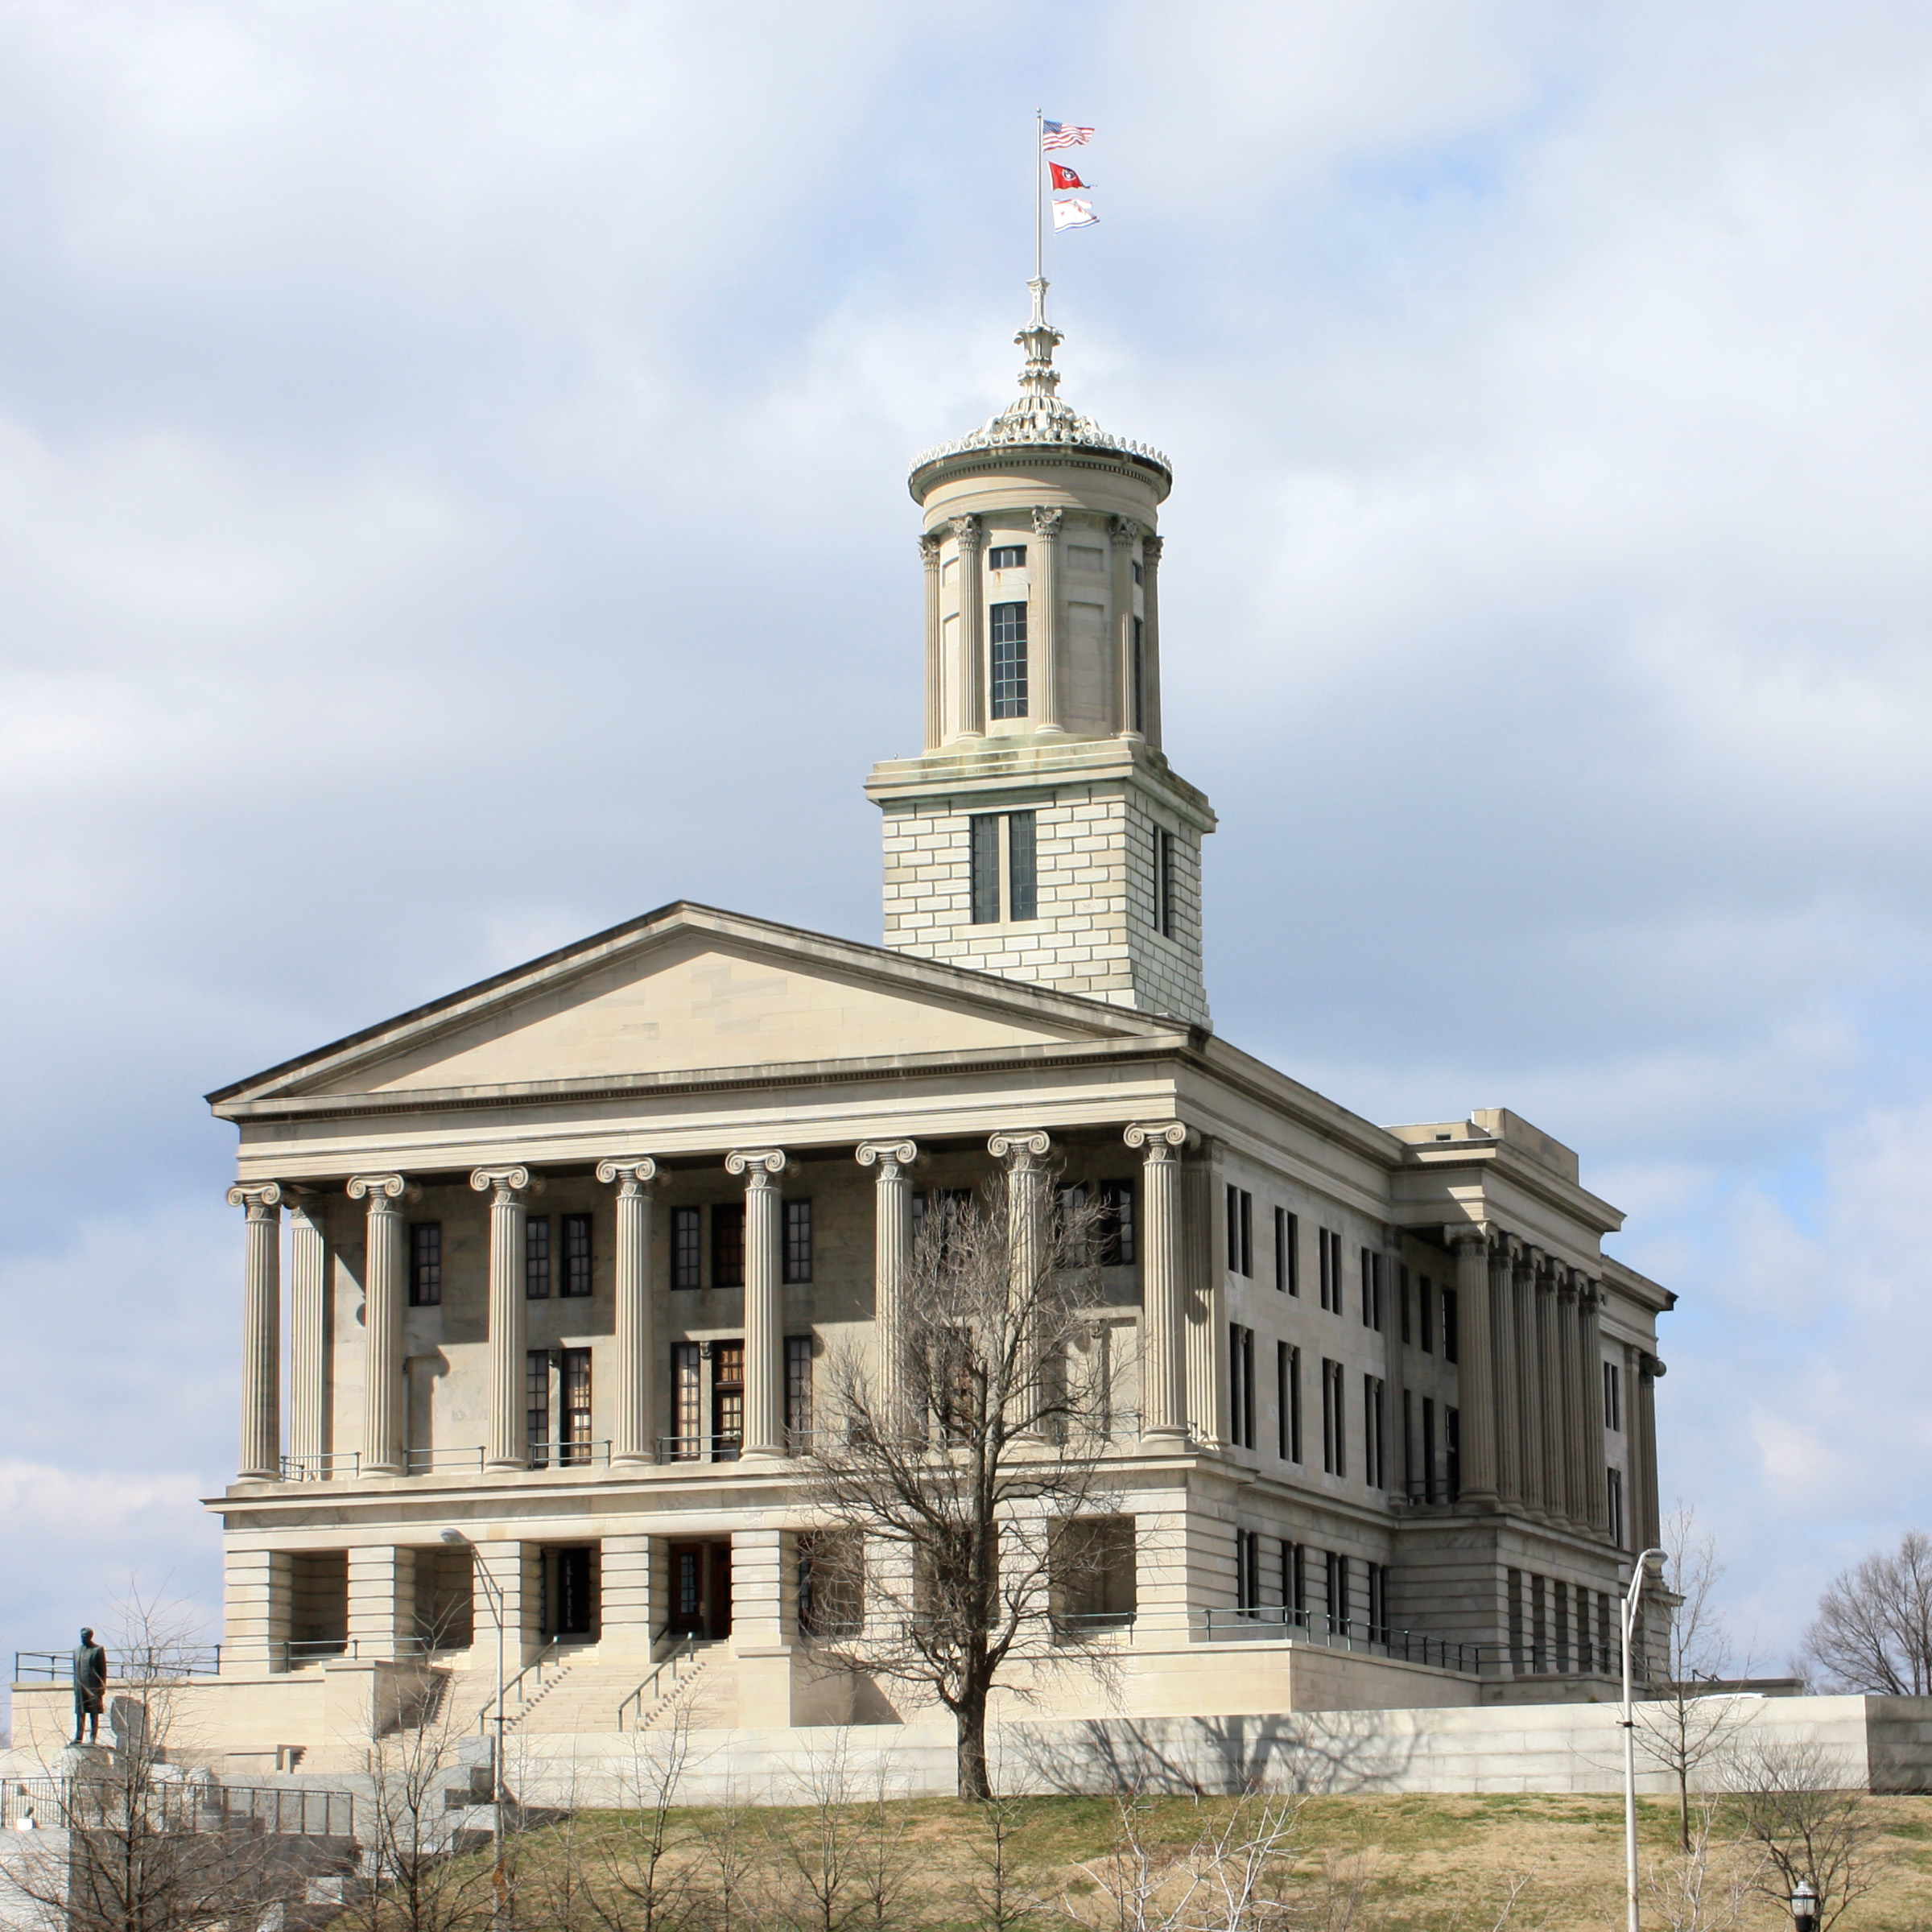 The capital was built using Greek Revival architecture and is one of only ten state capitols that does not feature a dome.